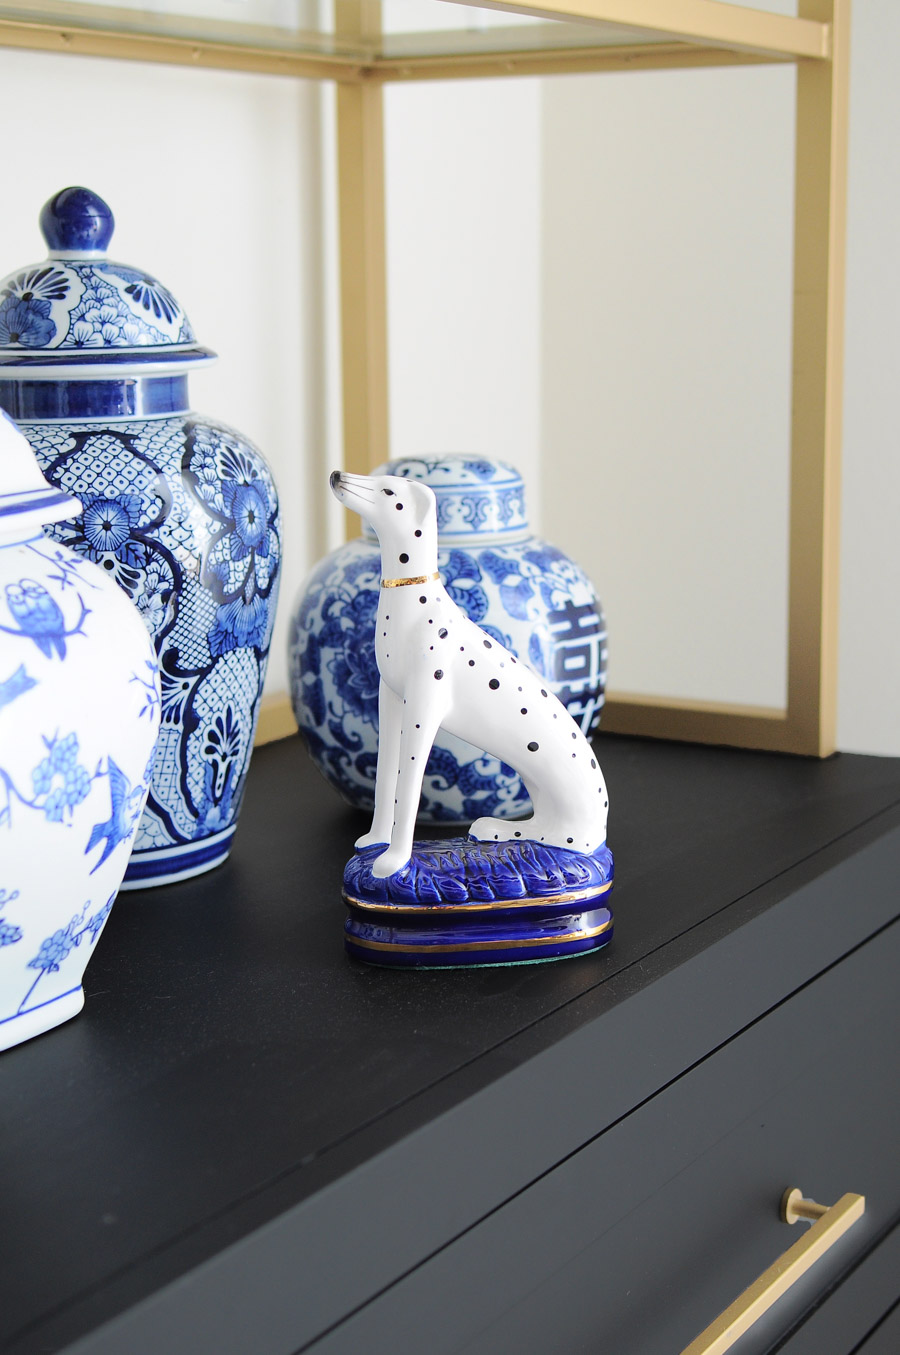 Fitz and Floyd Dalmatian Bookend paired with gorgeous ginger jars on a black and gold bookcase.